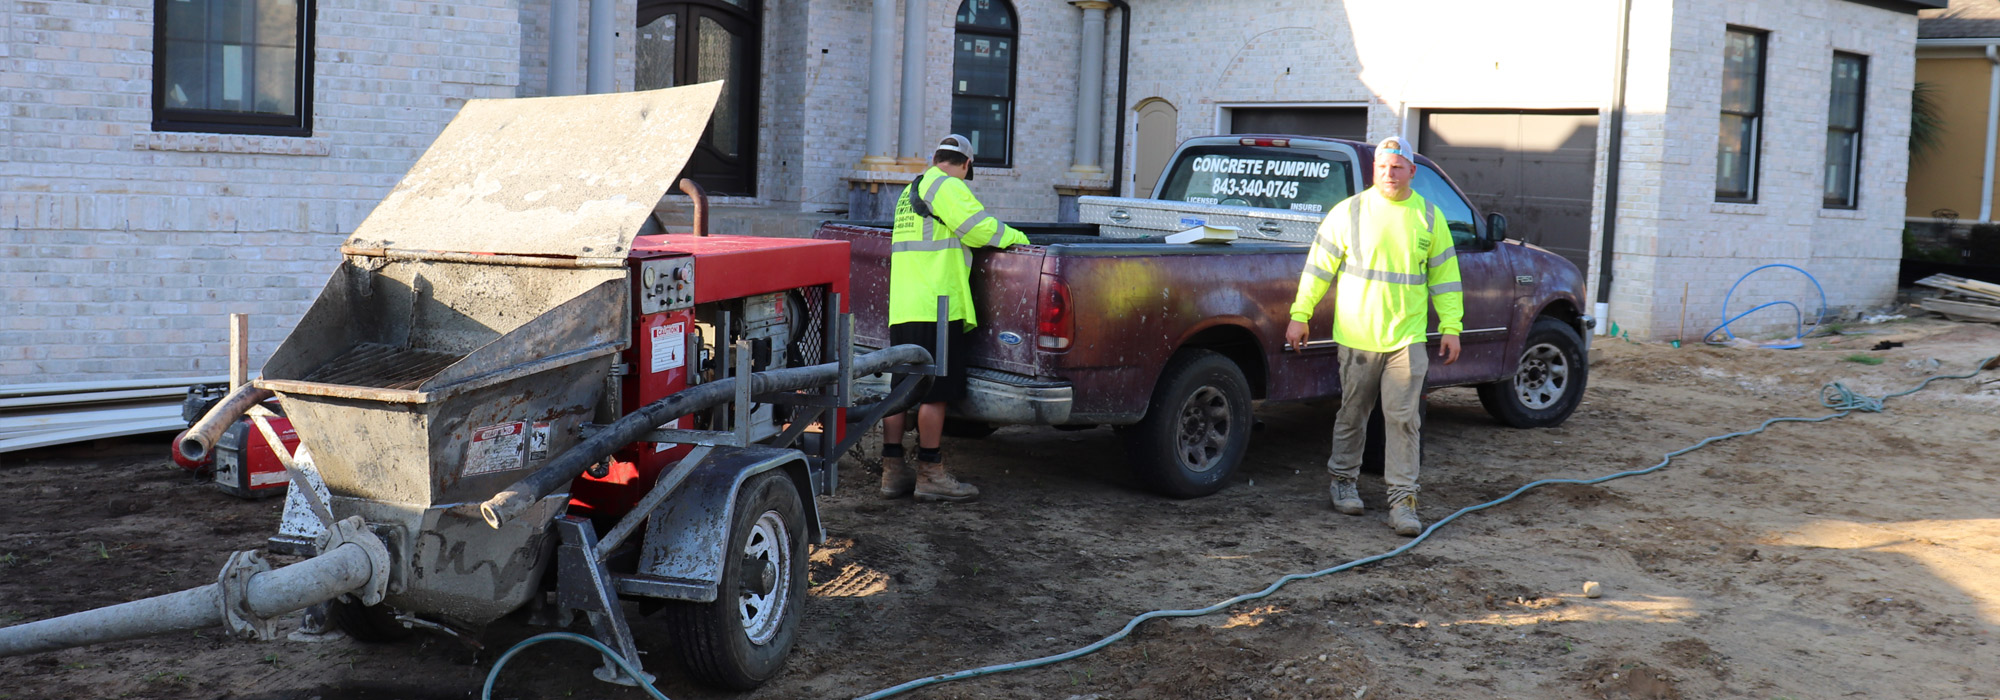 Best Concrete Pumping Company